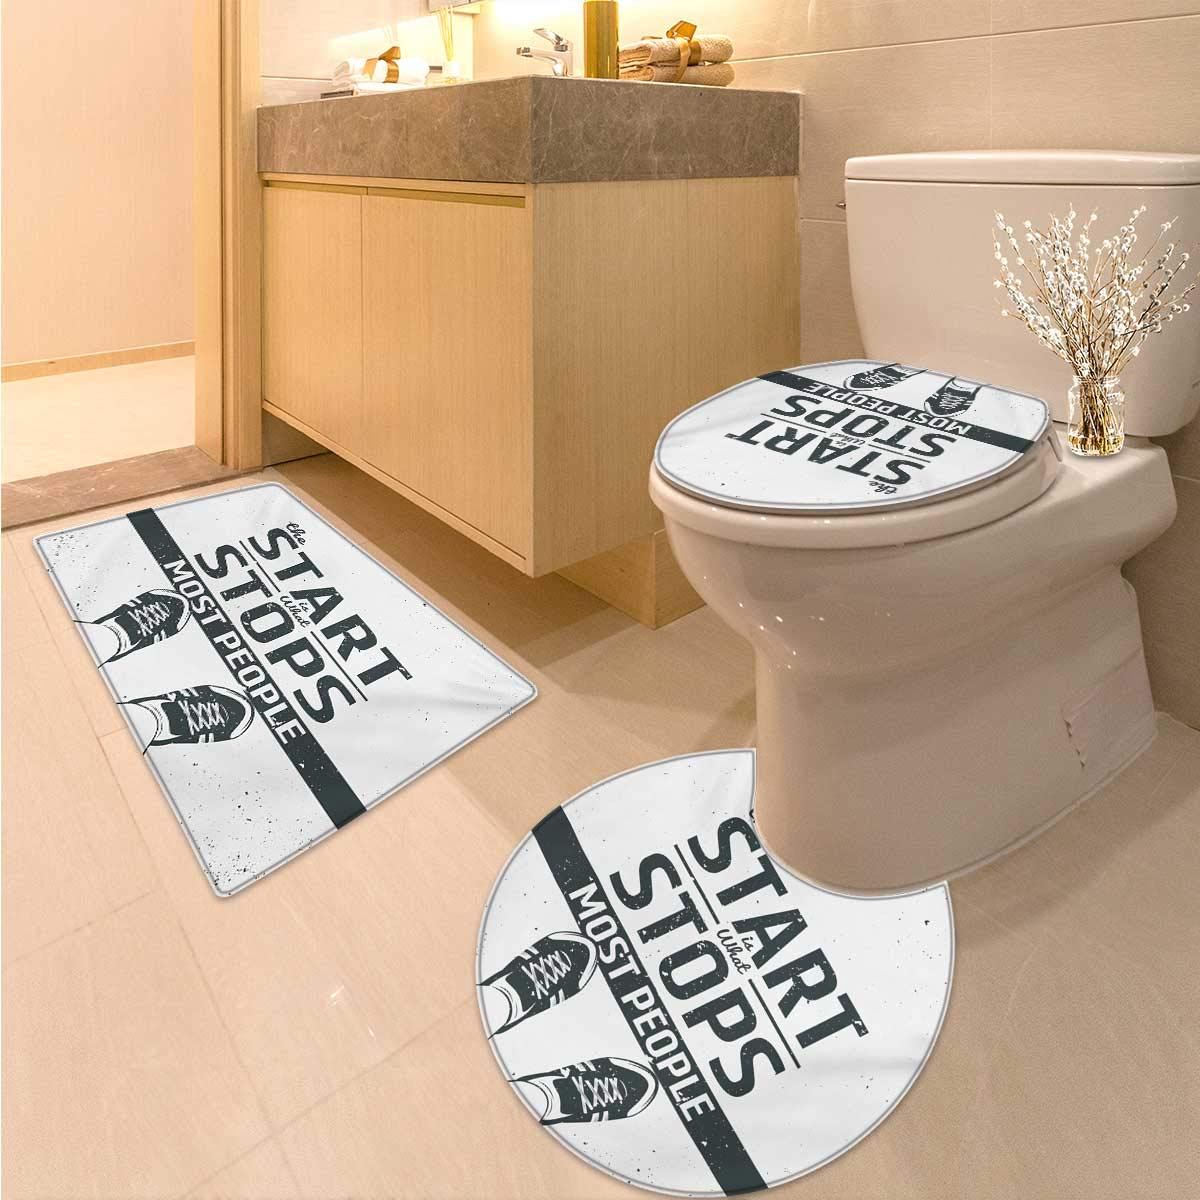 Quote bathroom and toilet mat set modern motivational and inspiring quotation with teenager artwork image print 3 piece anti slip mat set coconut black